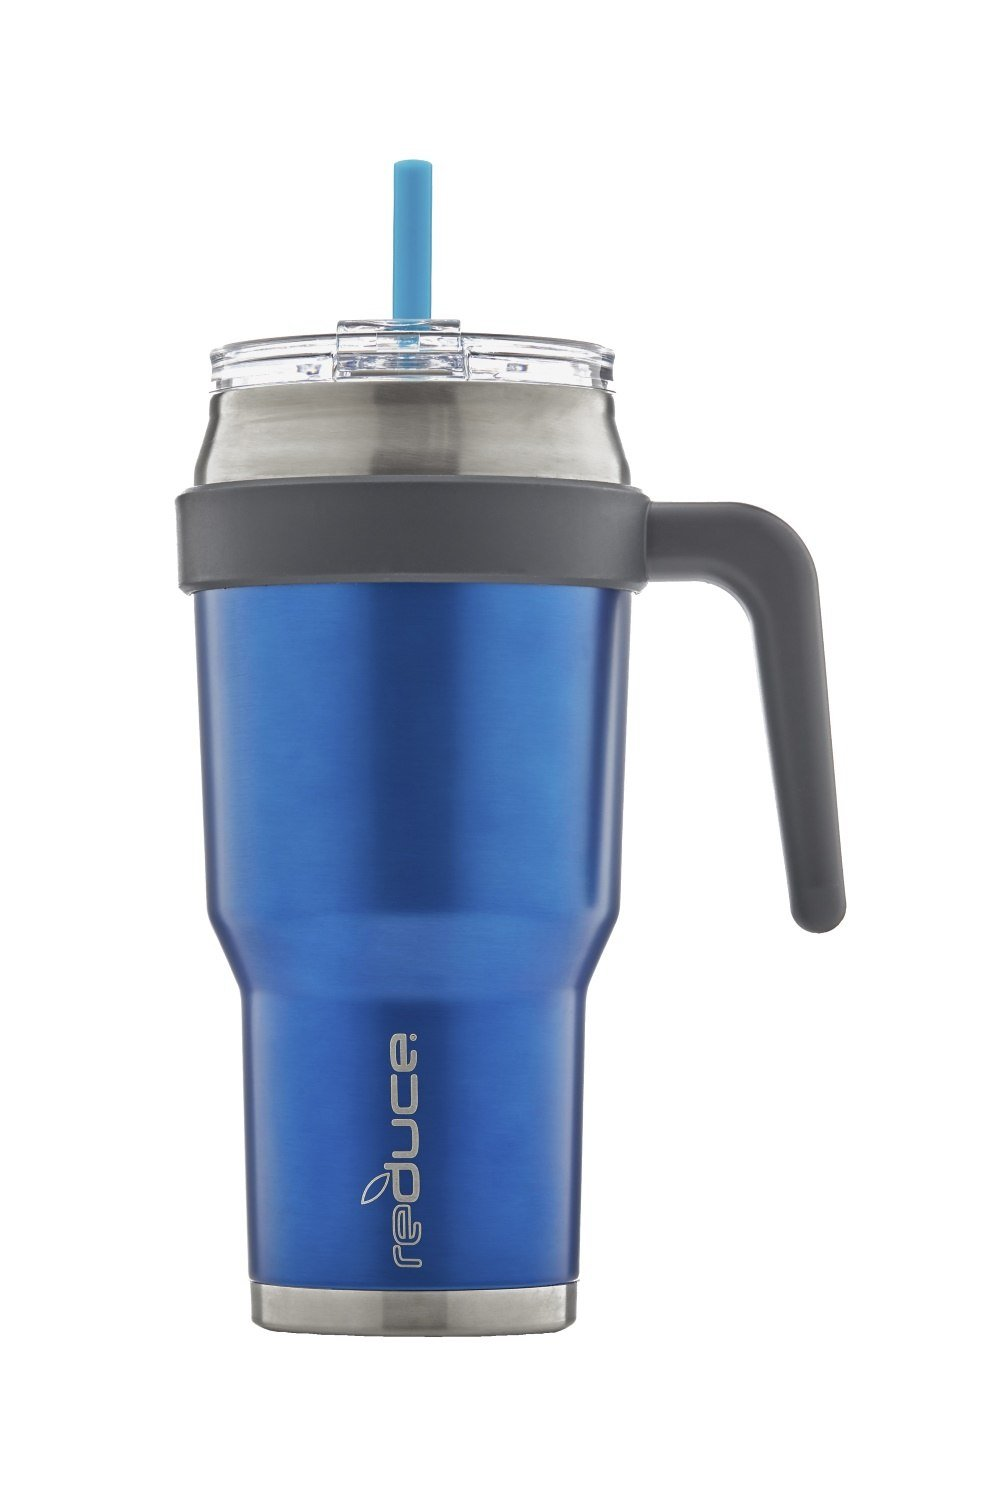 REDUCE COLD-1 Outdoor Extra Large Vacuum Insulated Thermal Mug with Slender Base, 3-in-1 Lid and Ergonomic Handle, 40oz - Tasteless and Odorless Powder Coat (Blue) - Great for Home and Travel